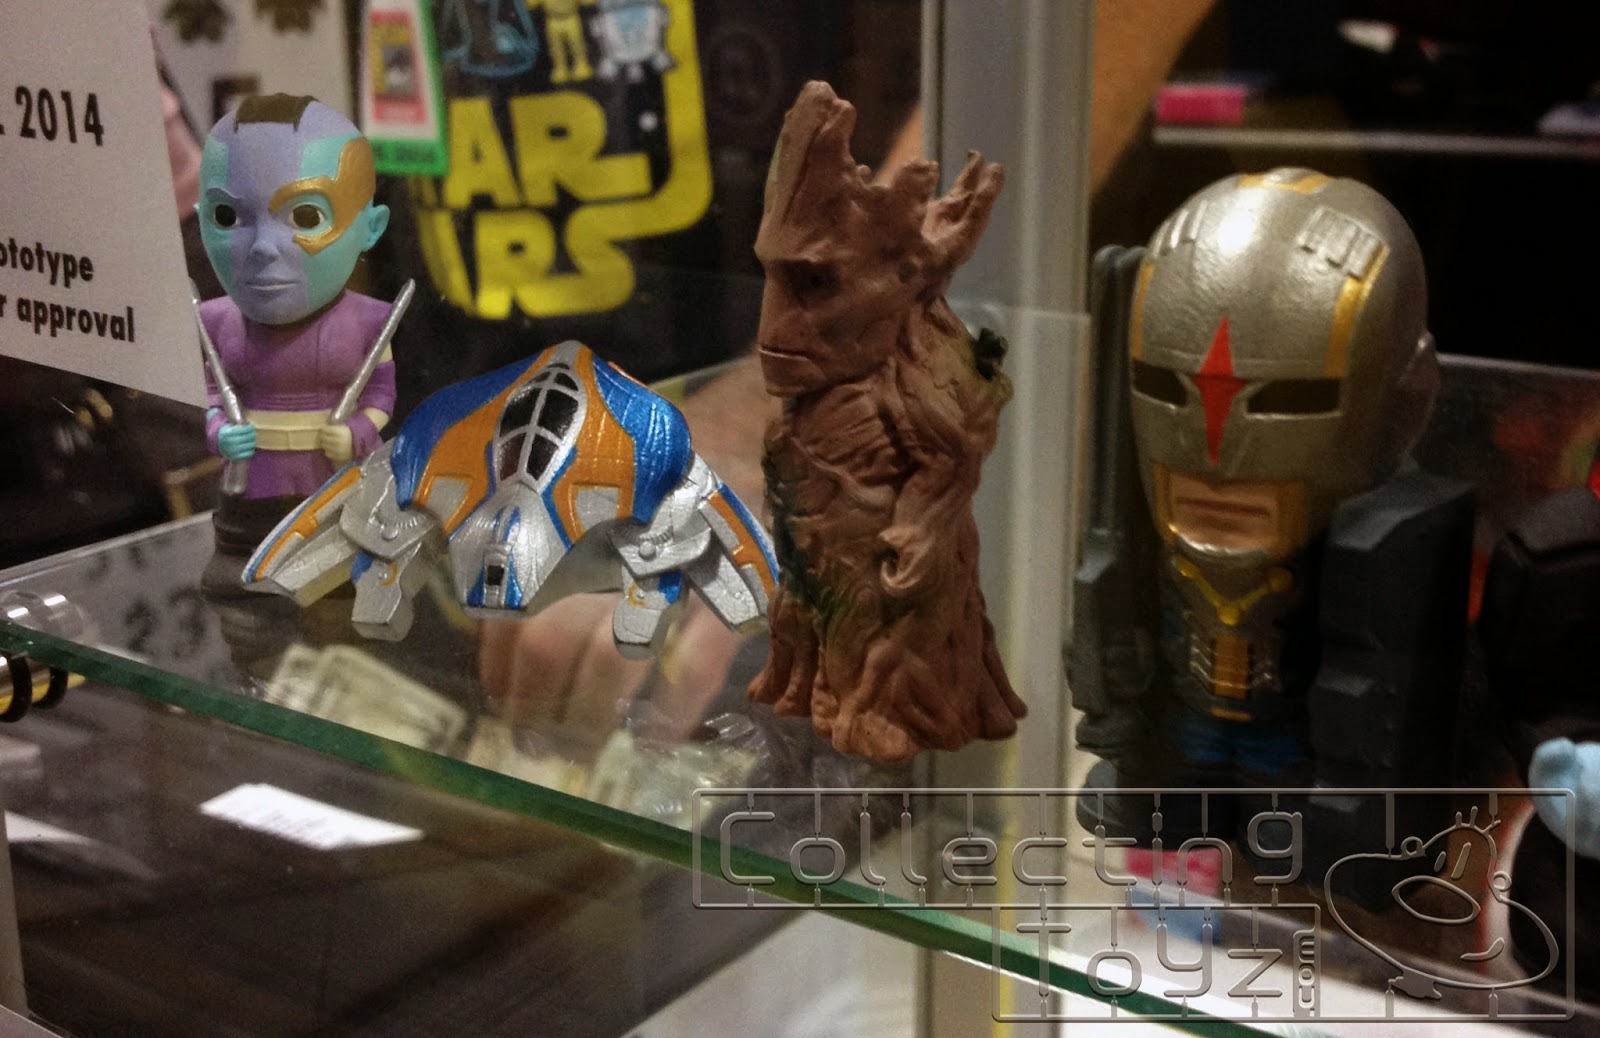 Huckleberry Toys had a display case filled with Yubi's Finger Puppet  Prototypes from Guardians of the Galaxy, Godzilla and How To Train Your  Dragon 2 at ...